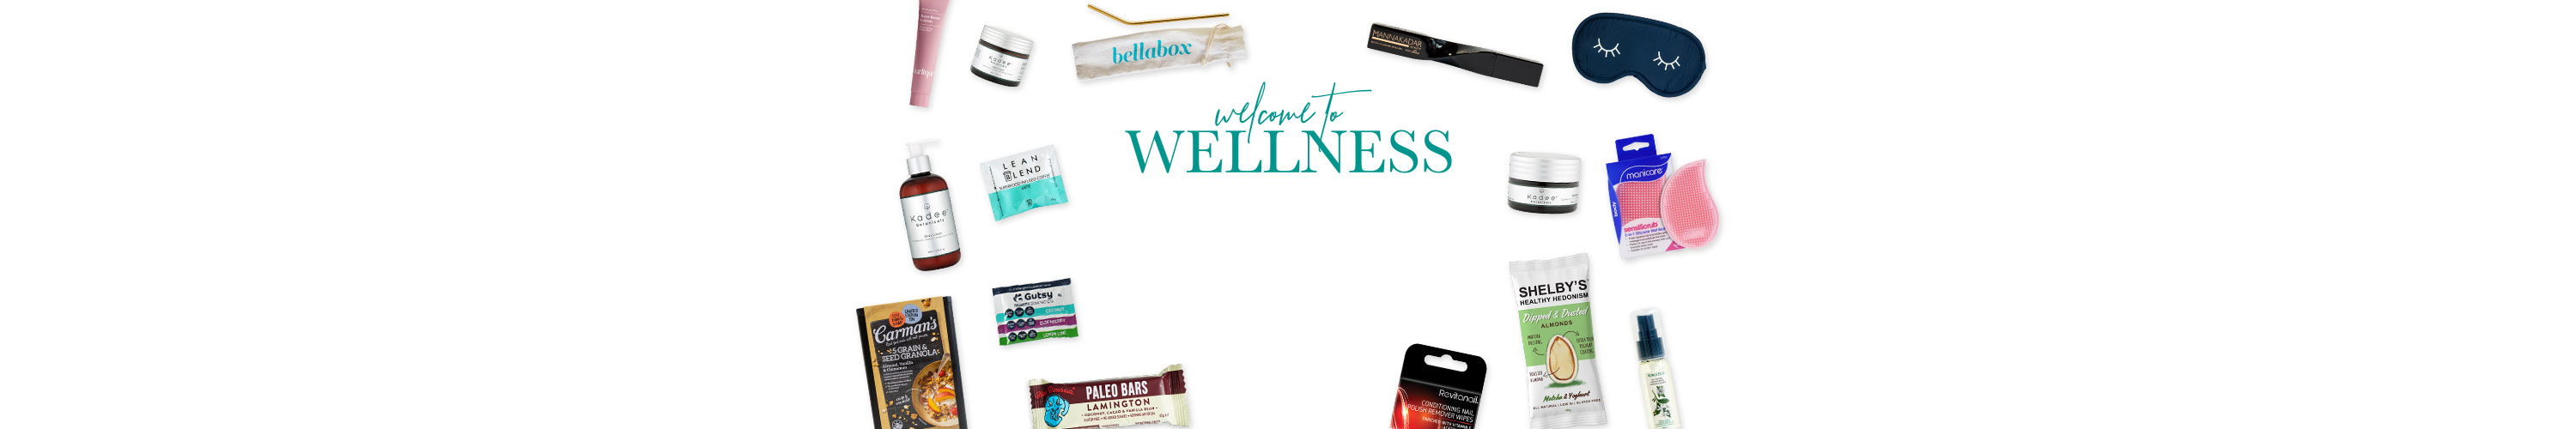 Welcome to Wellness box